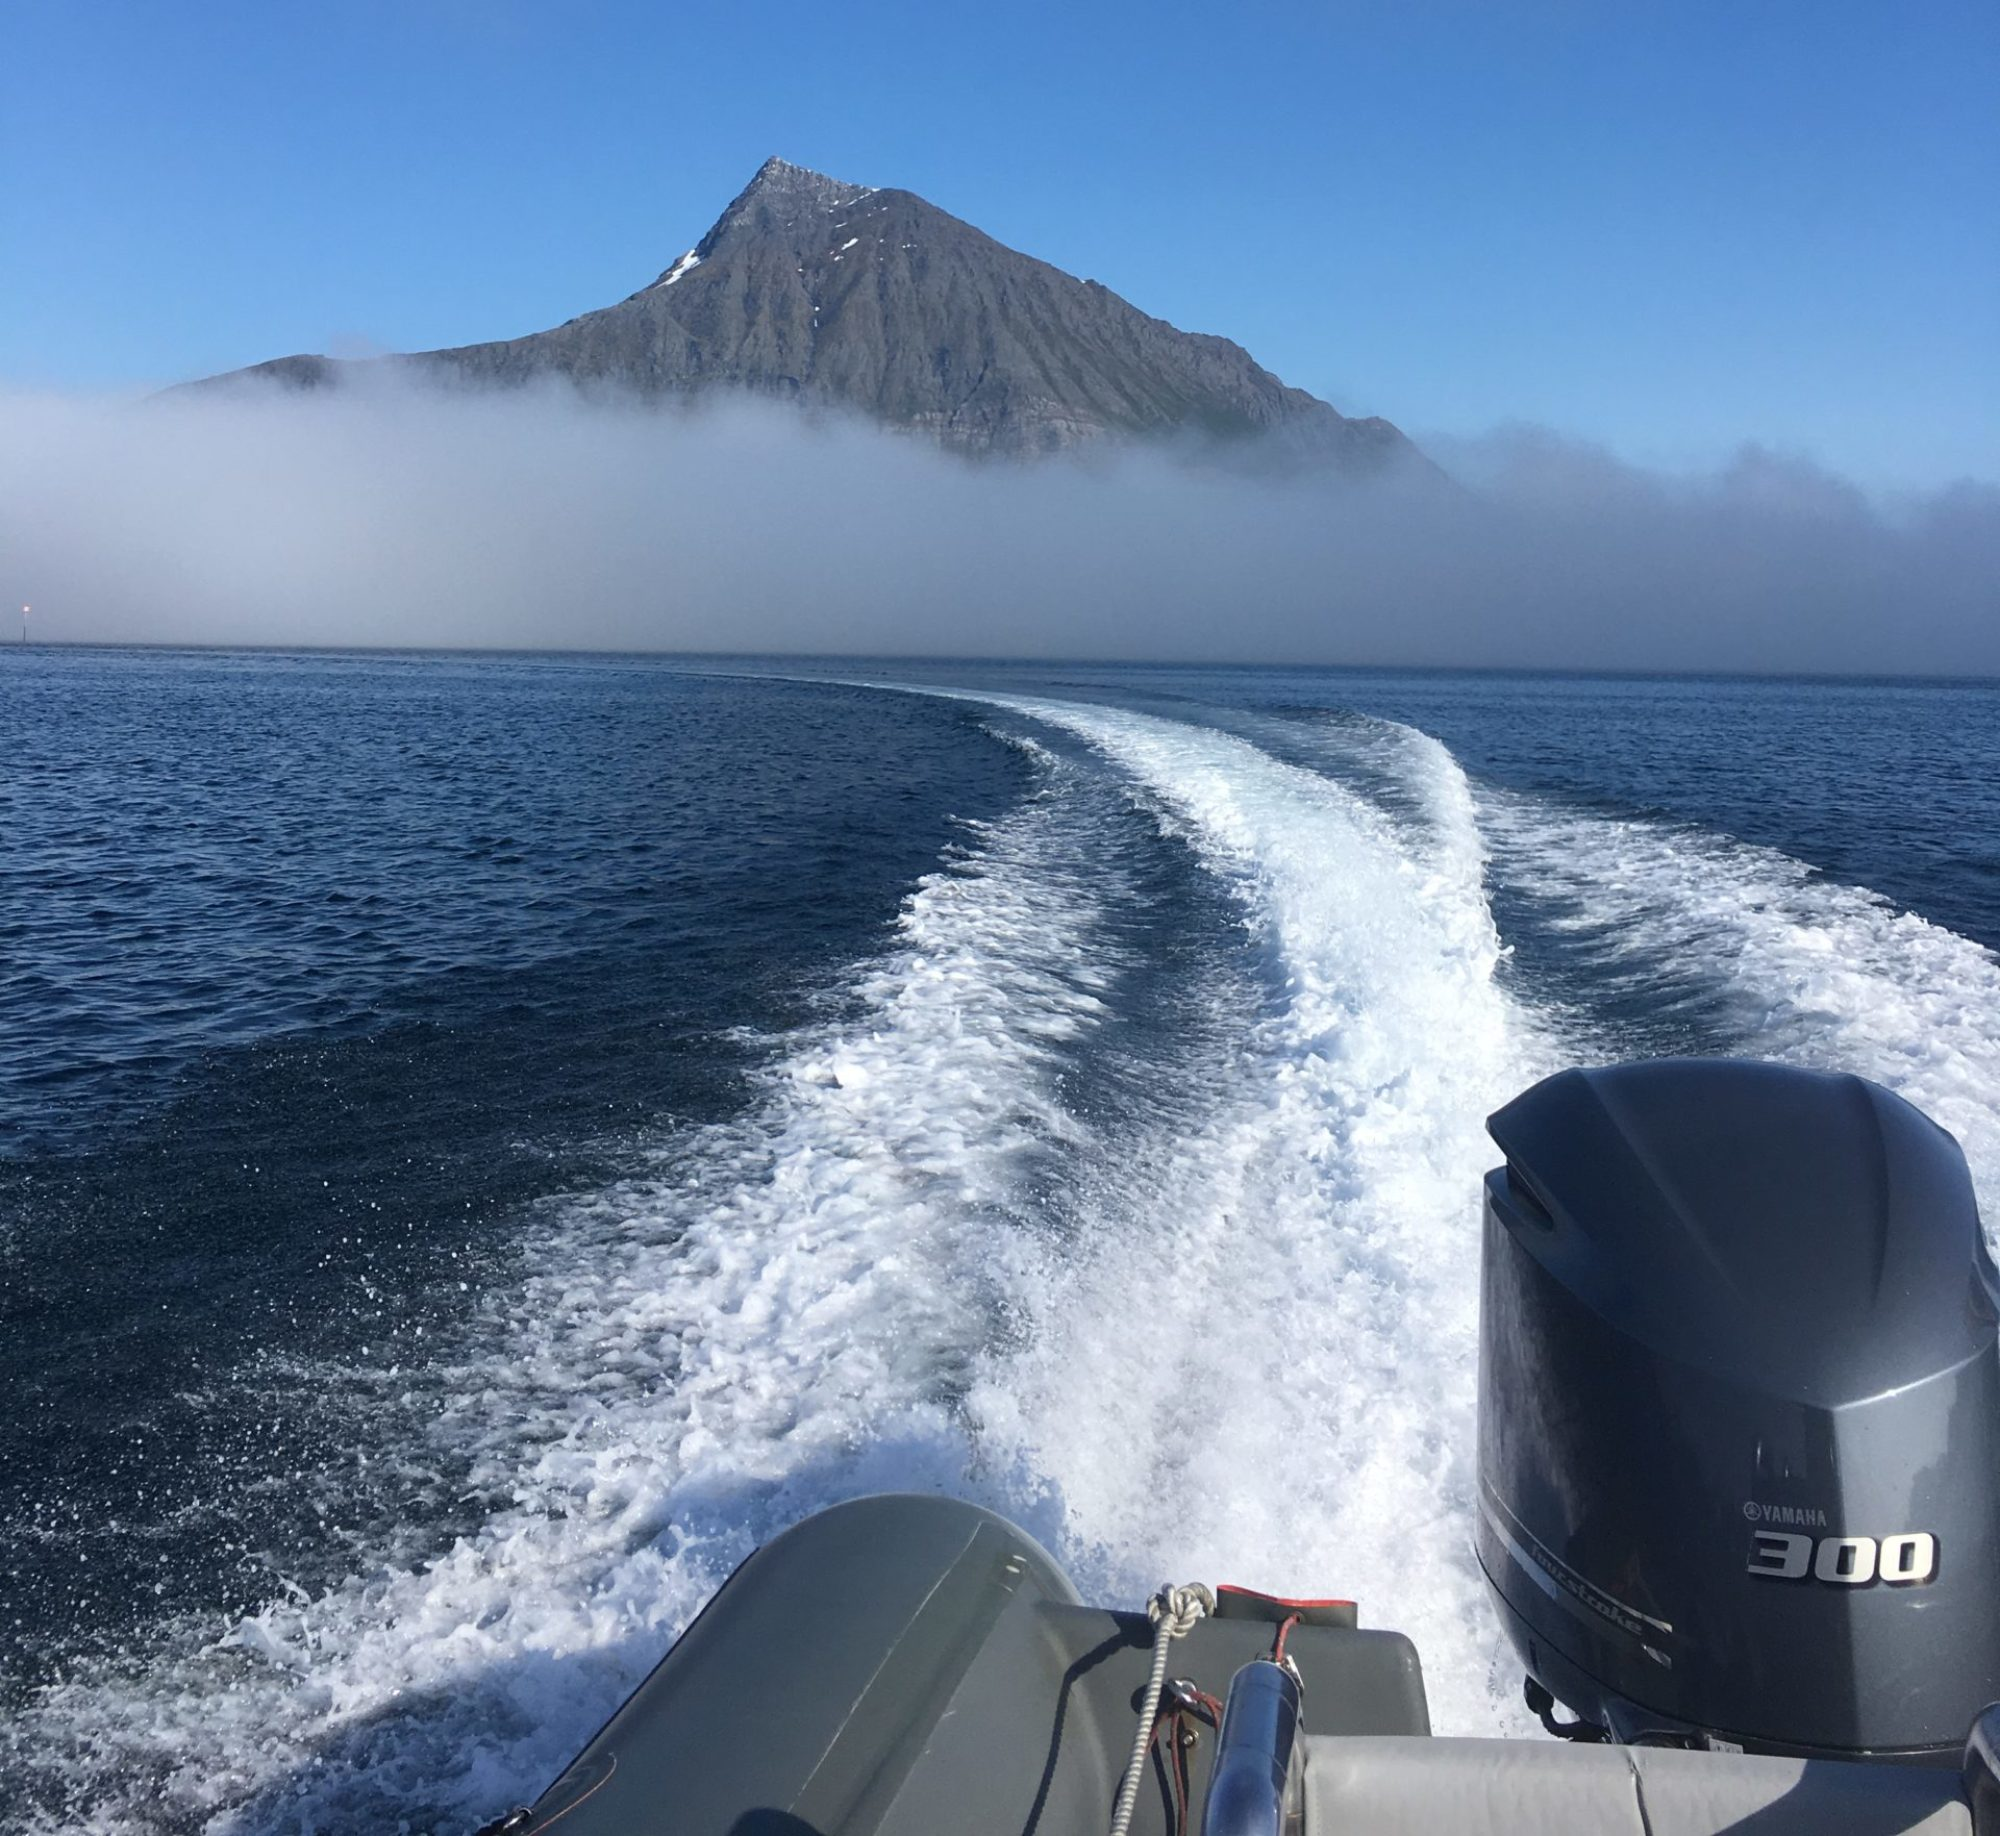 Transportation, guiding and adventures by boat